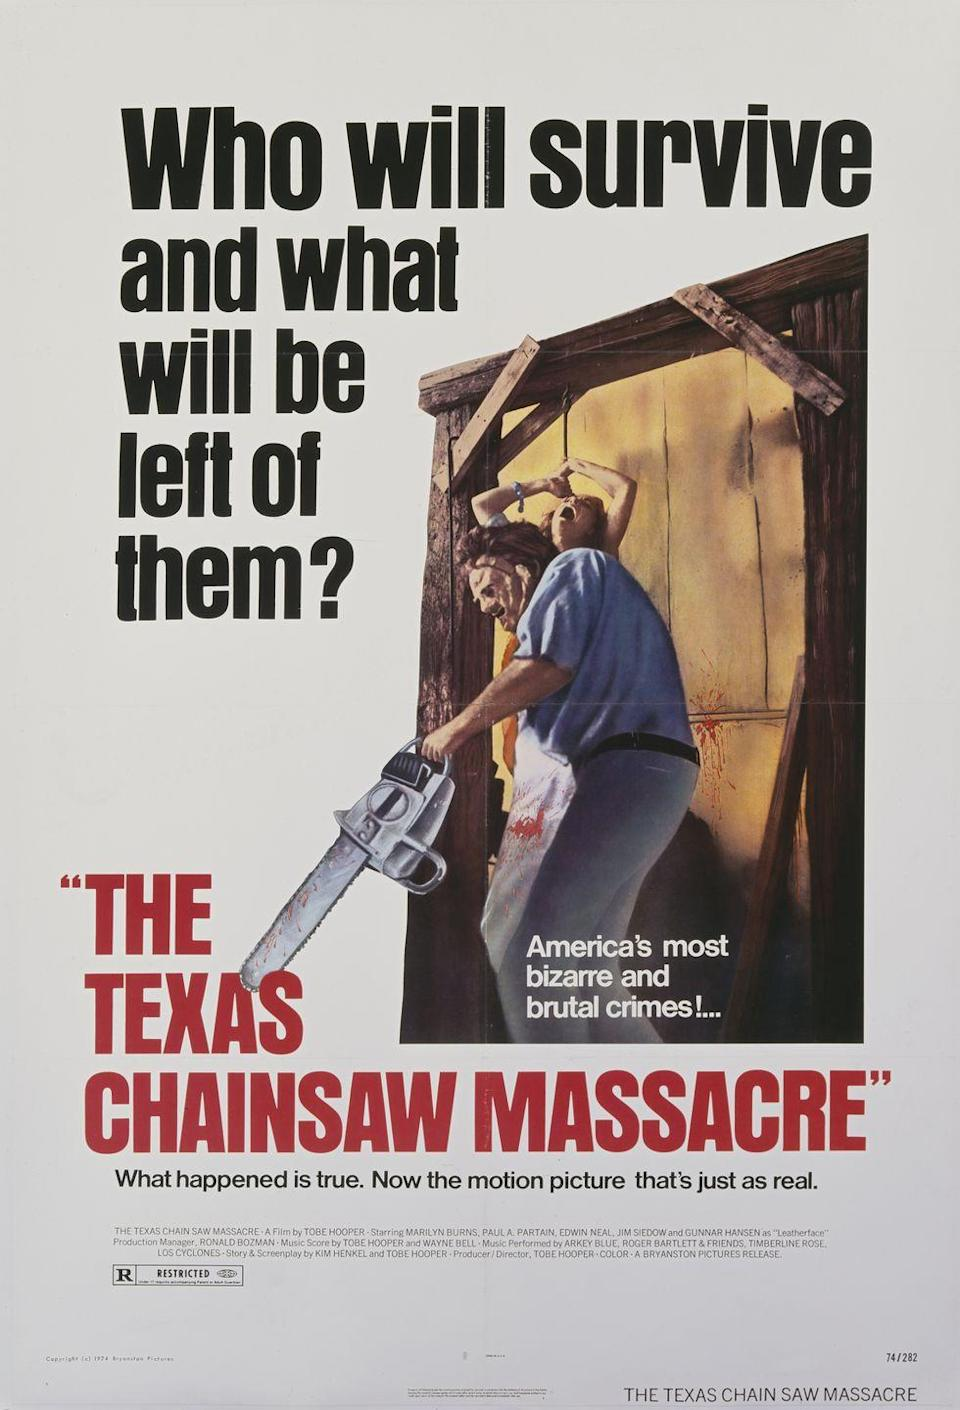 <p>Tobe Hooper's <em>The </em><em>Texas Chainsaw Massacre</em> was released on October 1, 1974, quickly becoming everyone's worst nightmare. The intensely brutal film spawned a film franchise, and Leatherface, the film's villain, is still a common costume today. Also in 1974, puppeteer Ralph Lee started the famous Village Halloween Parade in New York City. </p>